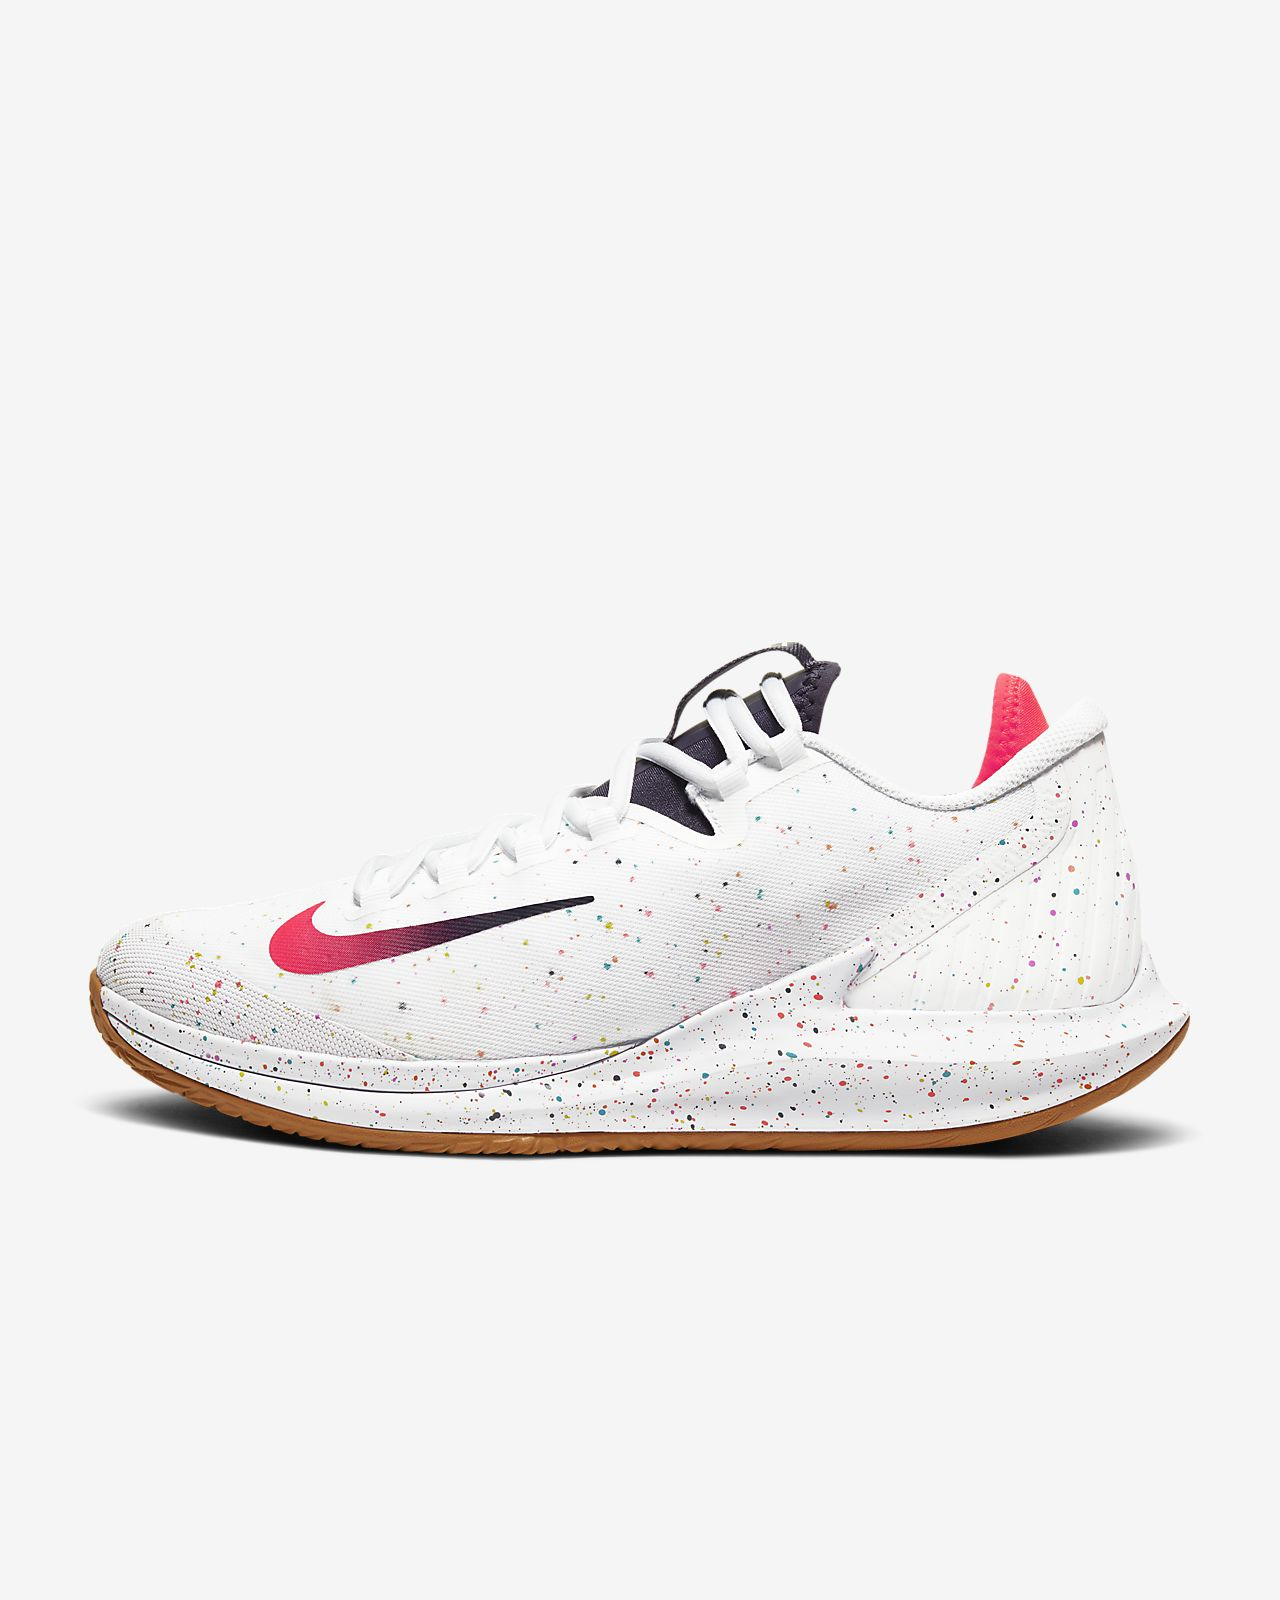 NikeCourt Air Zoom Zero HC 男子网球鞋